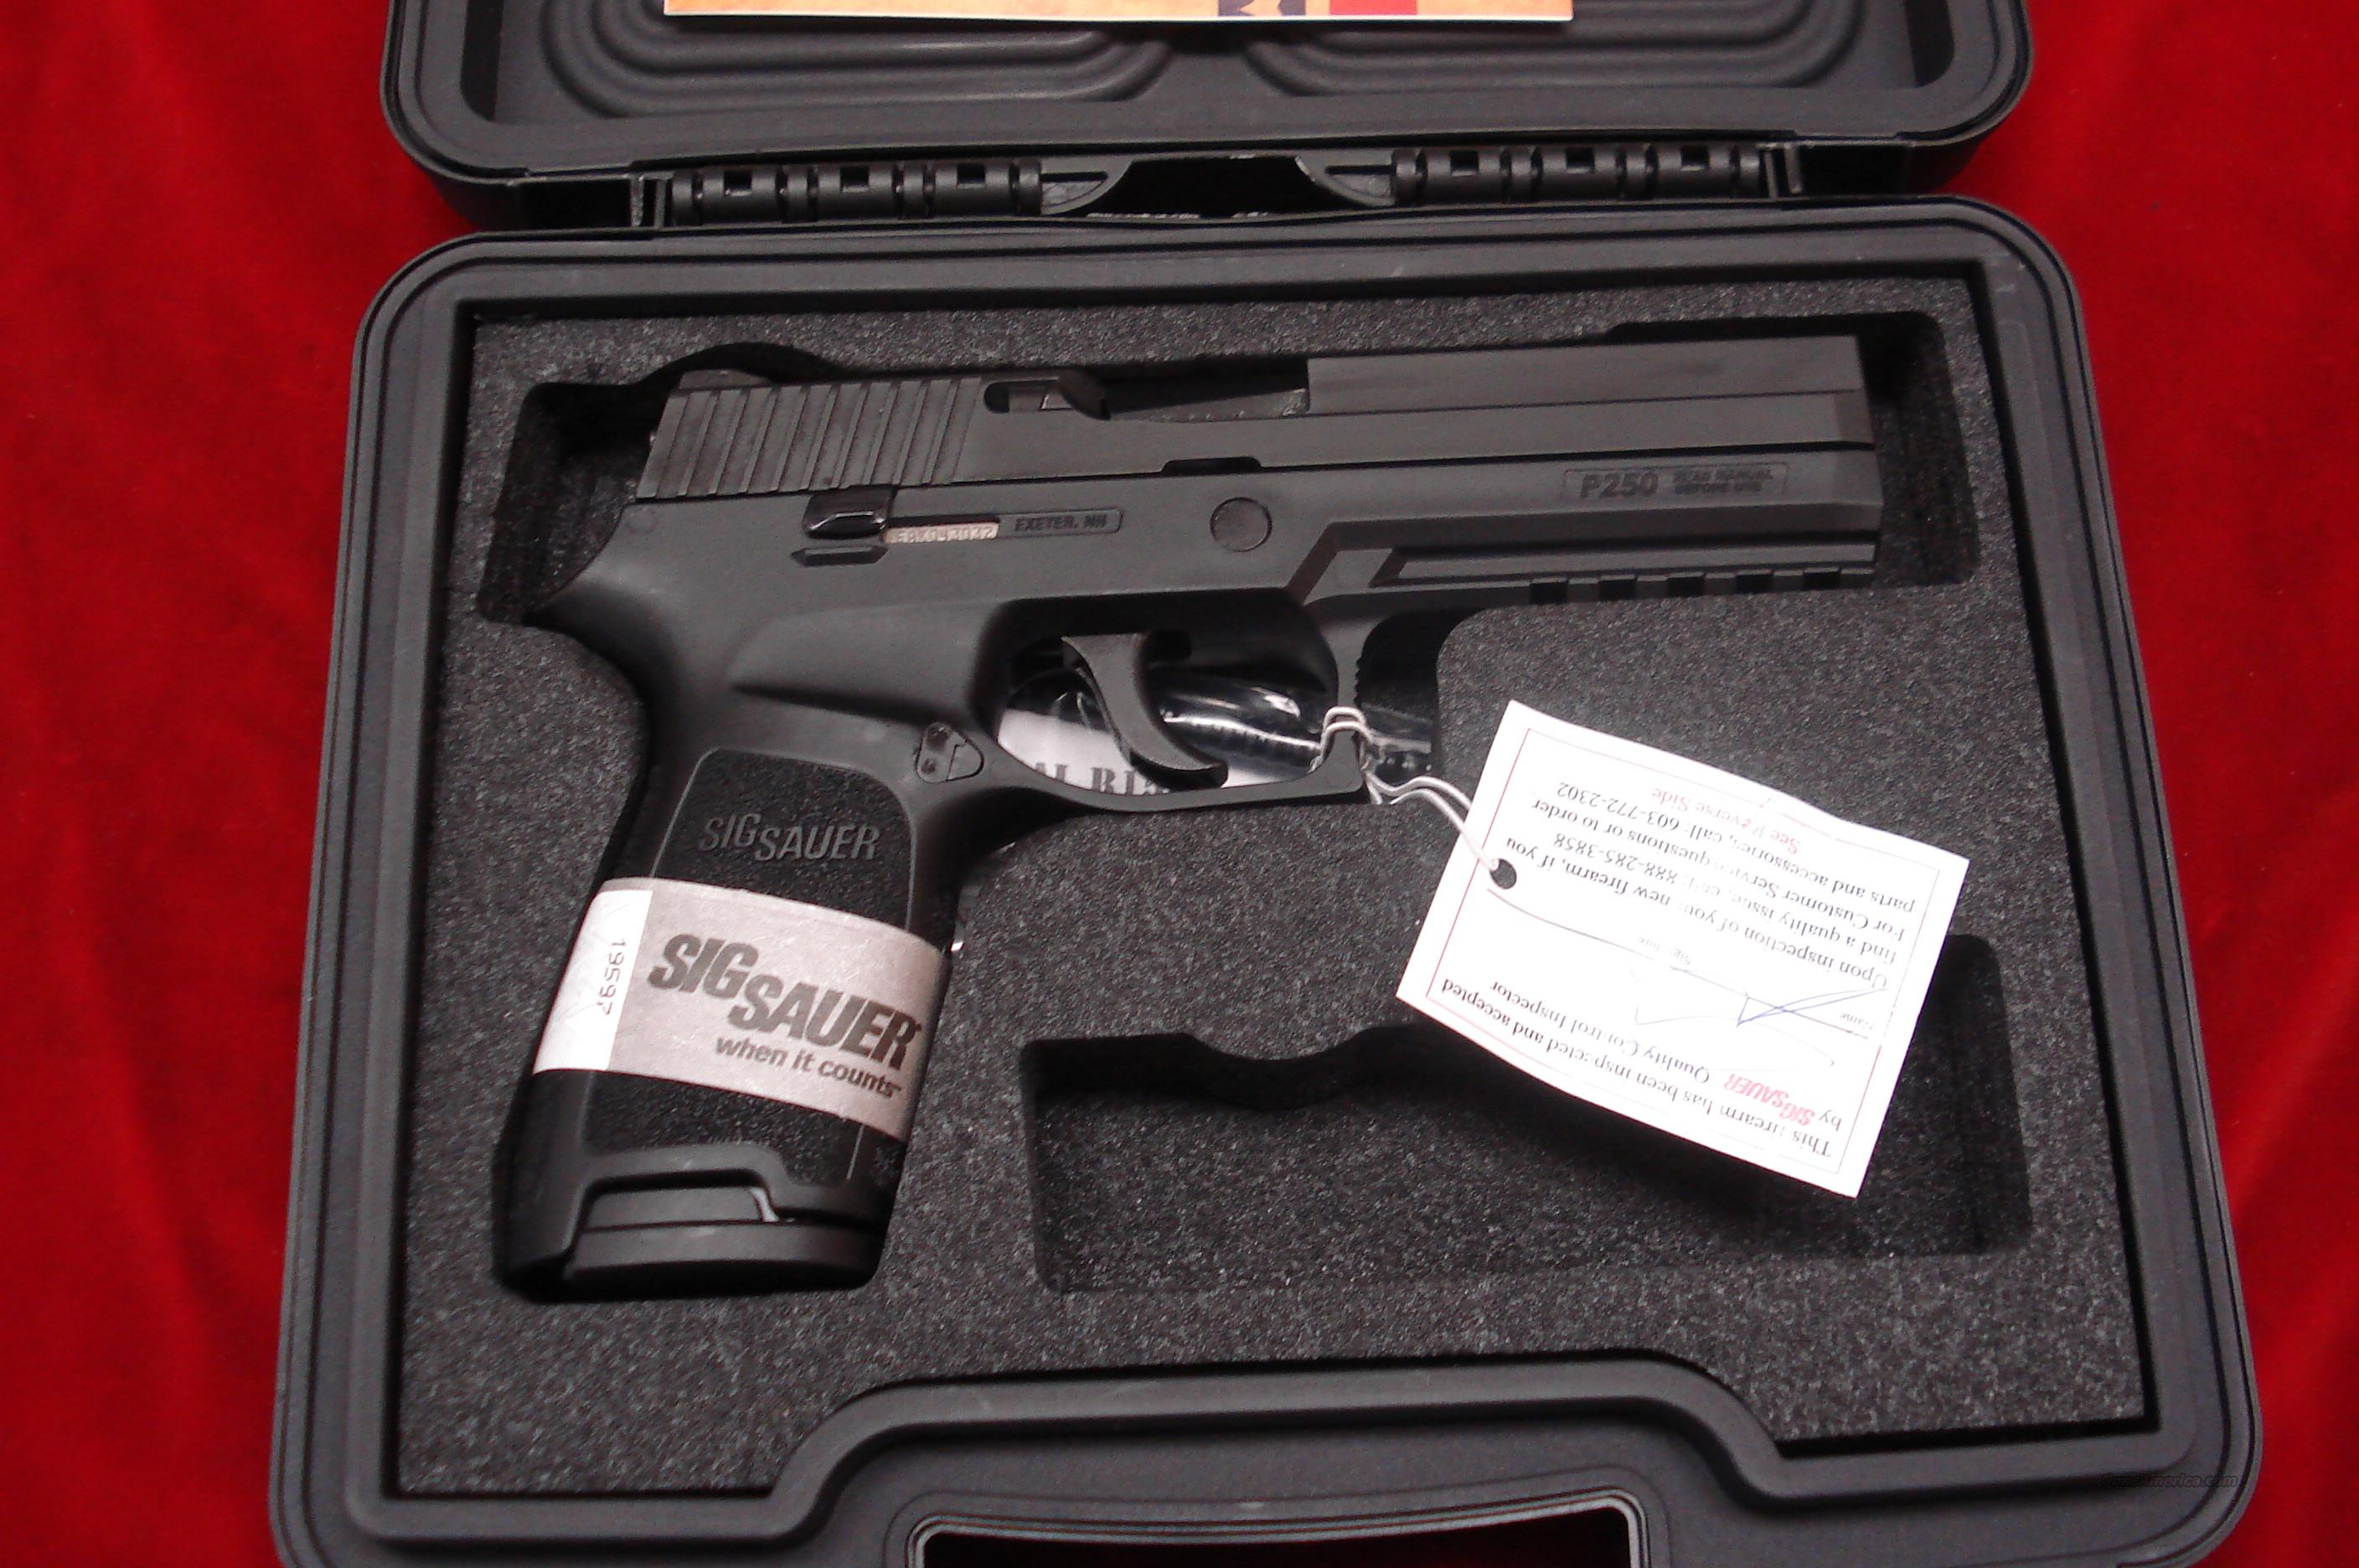 SIG SAUER P250 .40 CAL. NEW  Guns > Pistols > Sig - Sauer/Sigarms Pistols > Other